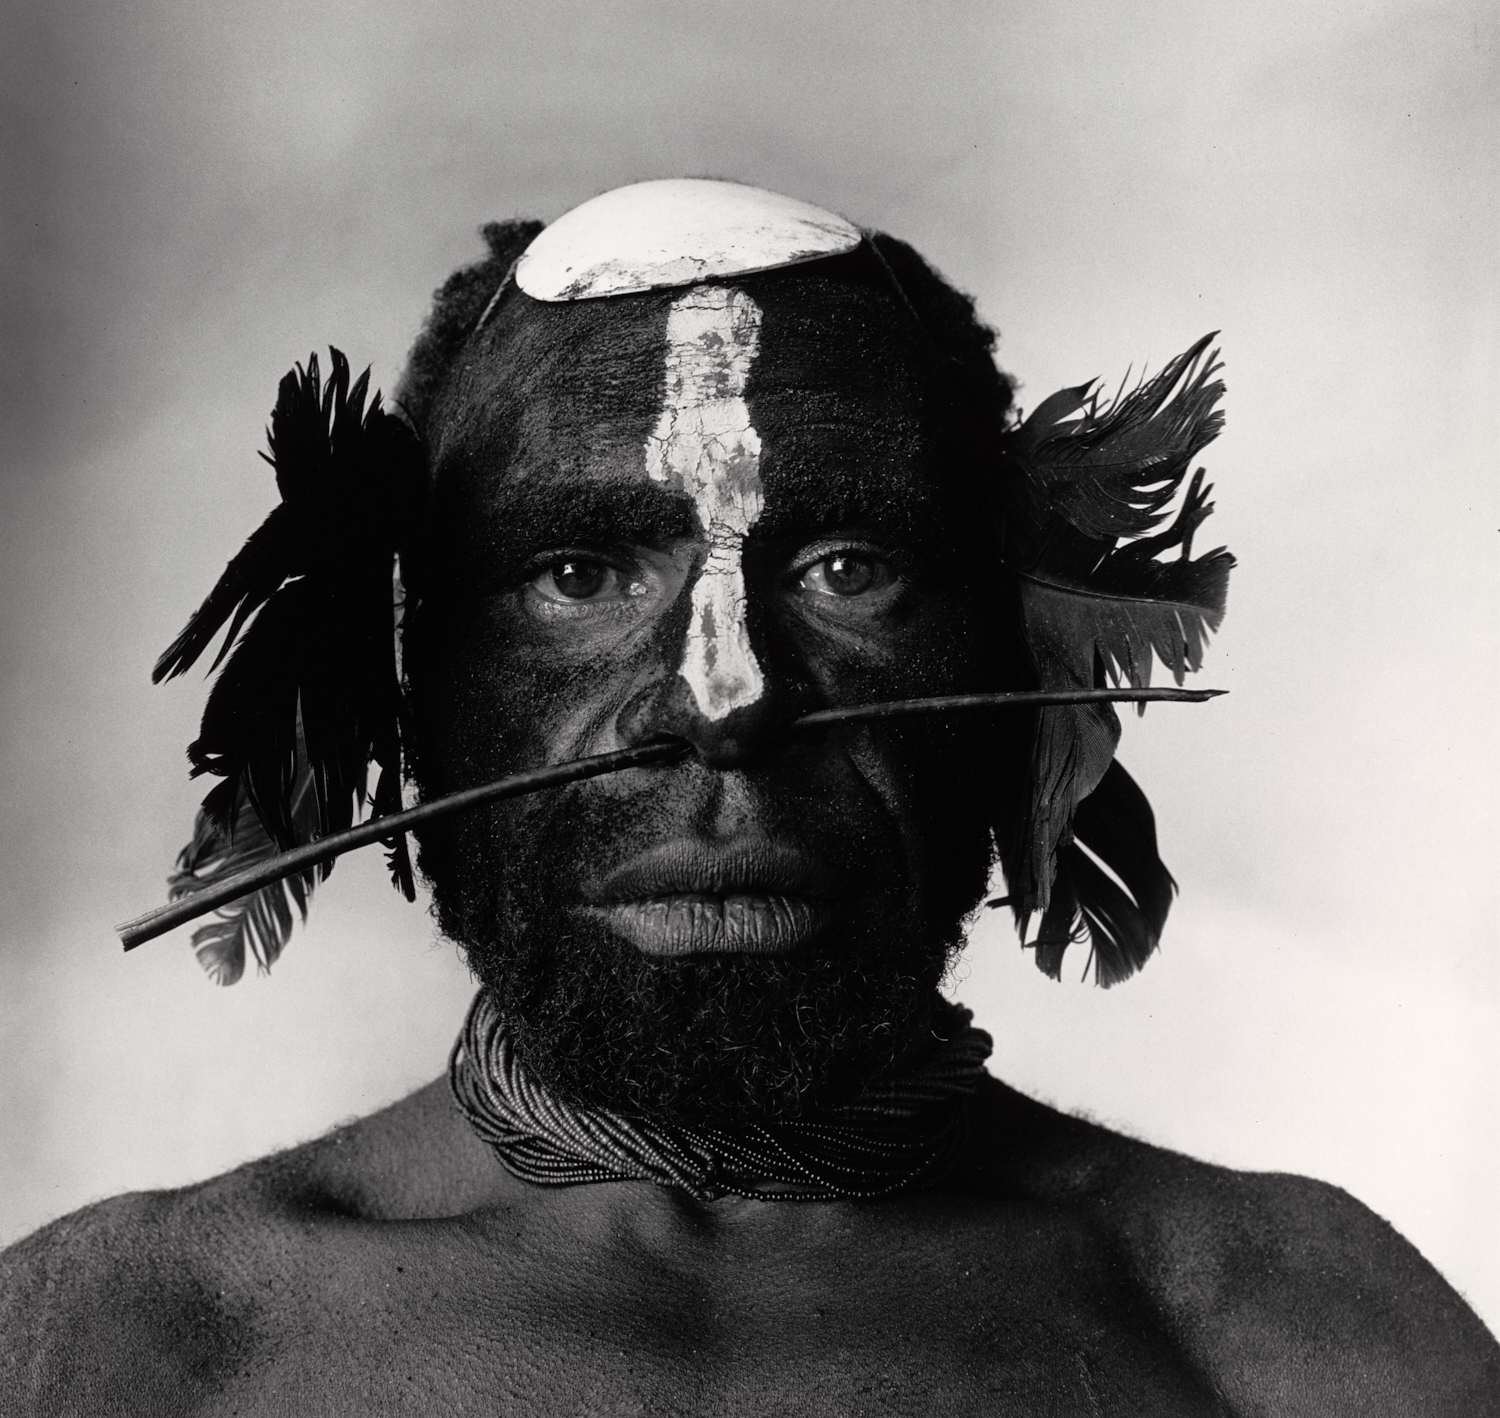 Tribesman with Nose Ornament , New Guinea, 1970 Gelatin silver print © The Irving Penn Foundation